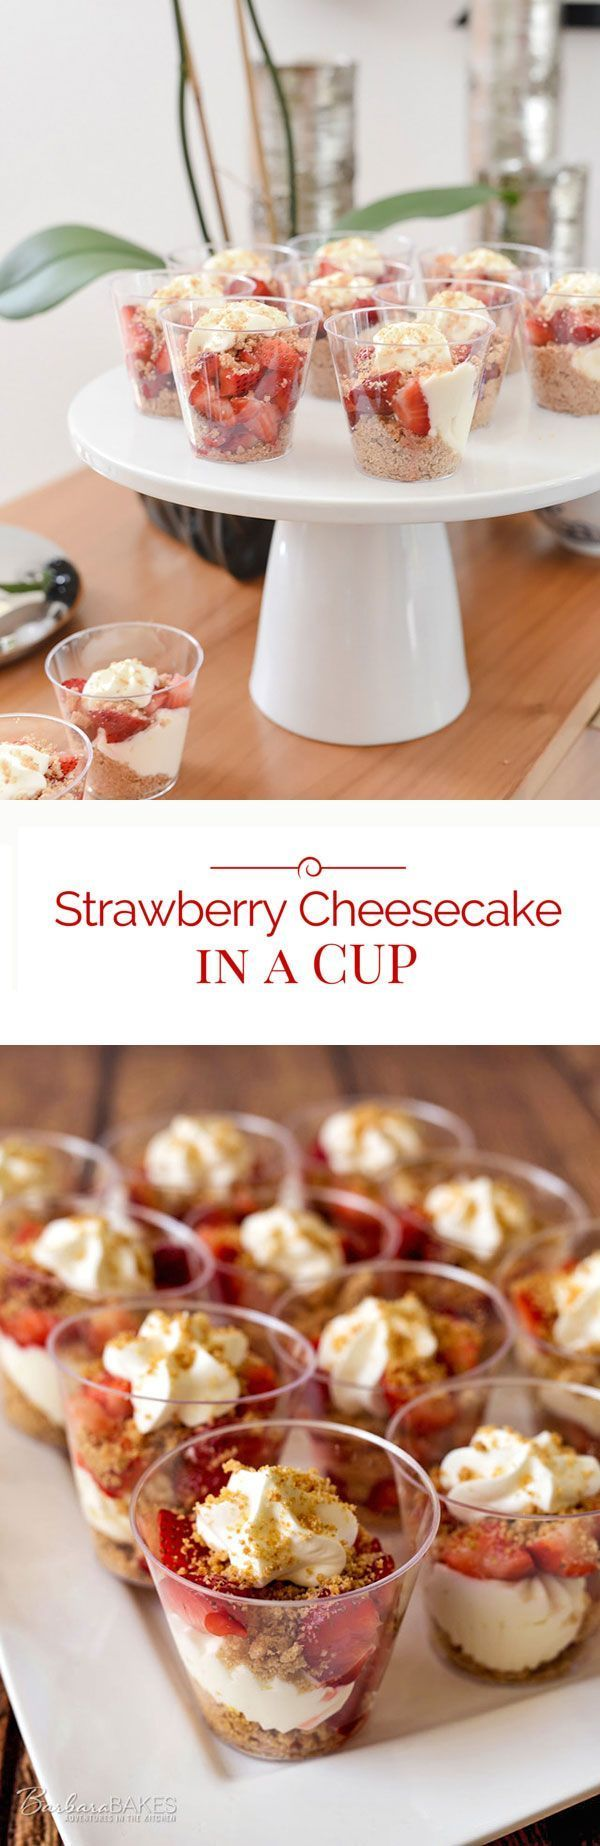 how to make the best strawberry cheesecake